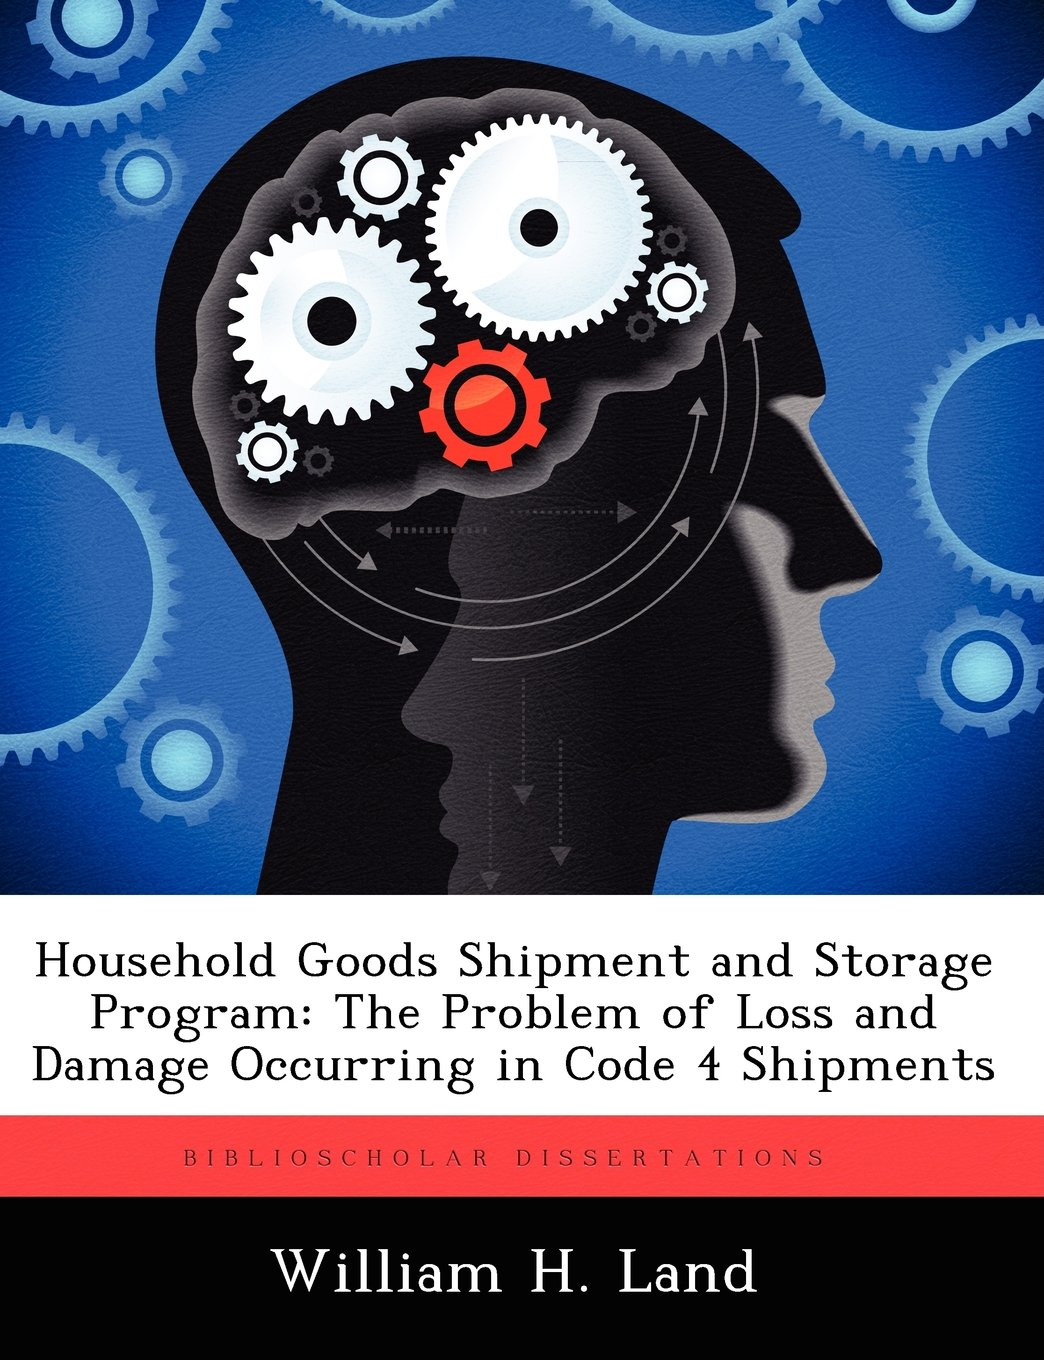 Download Household Goods Shipment and Storage Program: The Problem of Loss and Damage Occurring in Code 4 Shipments PDF